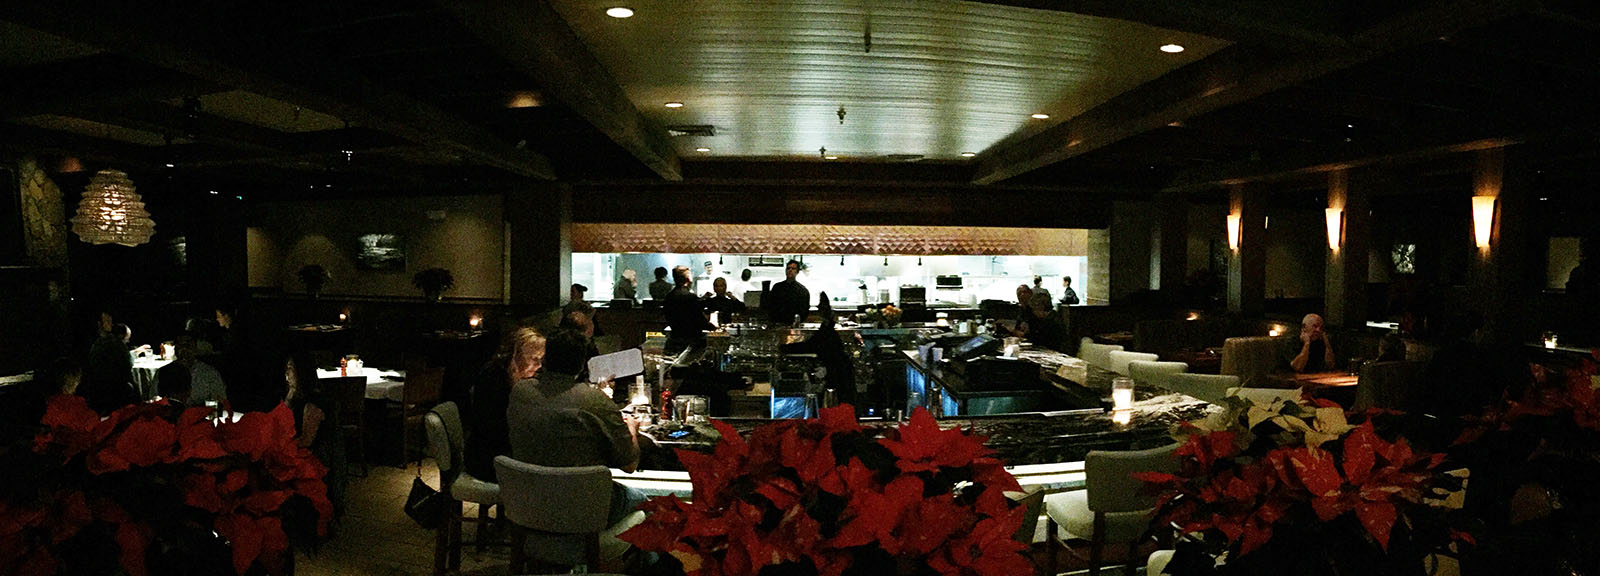 Stoney River Steakhouse and Grill, Duluth, Johns Creek, Gwinnett, North Fulton